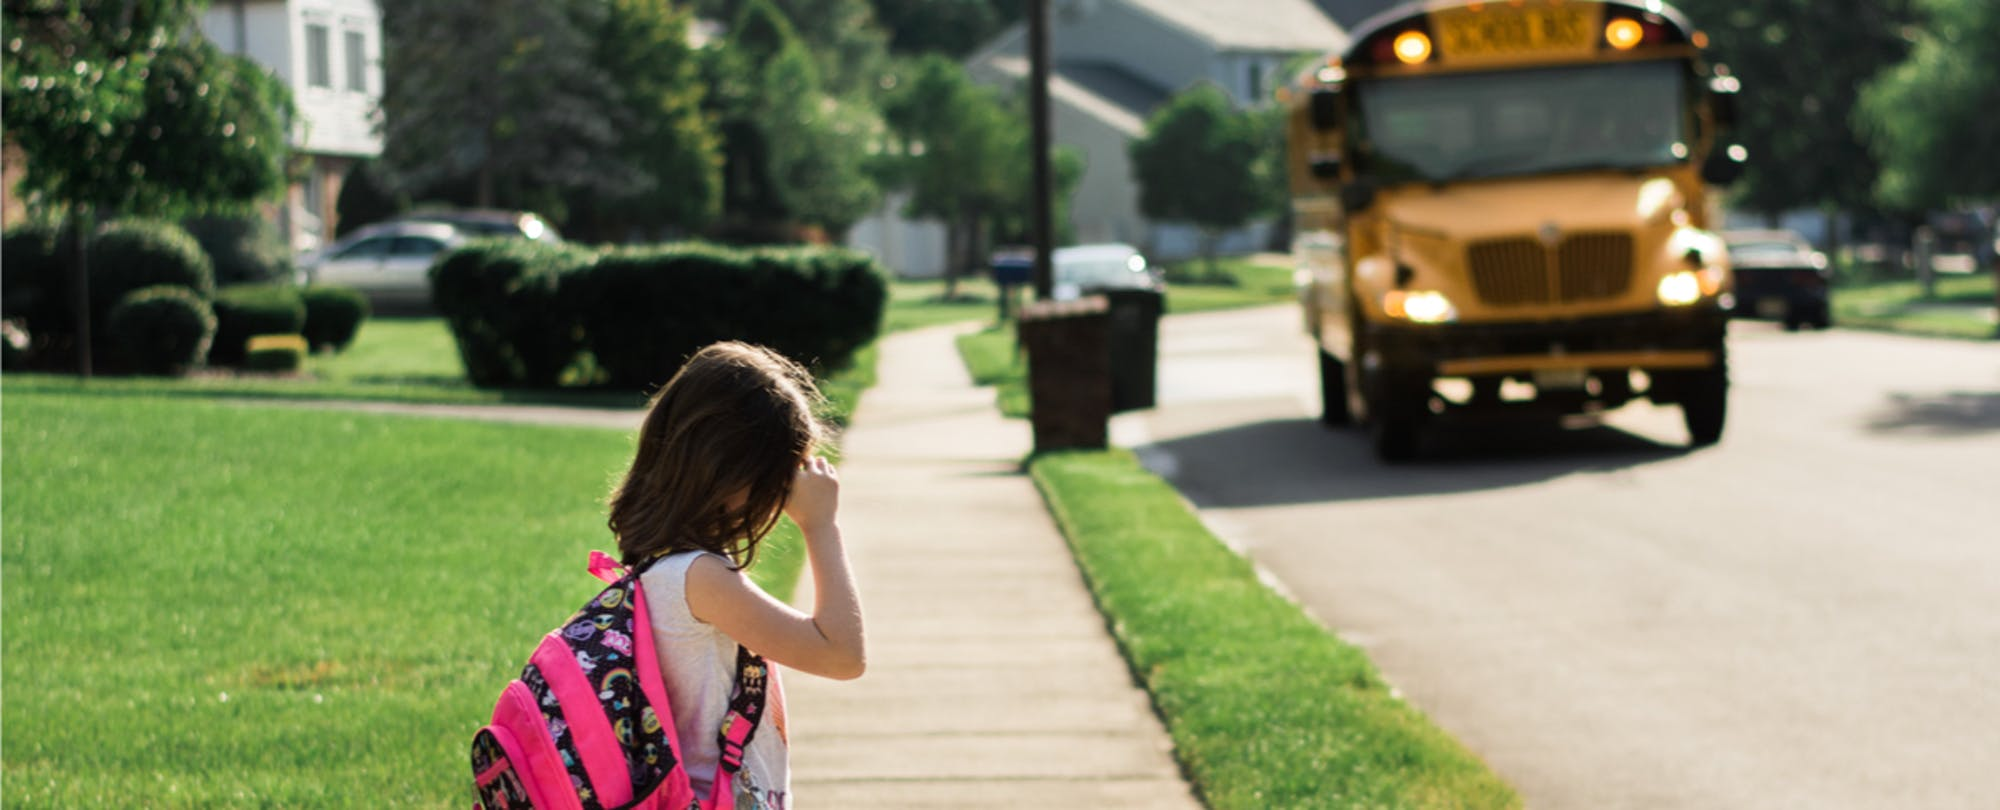 When a New School Year Means a New School Model, Students Can Be in for an Uphill Battle